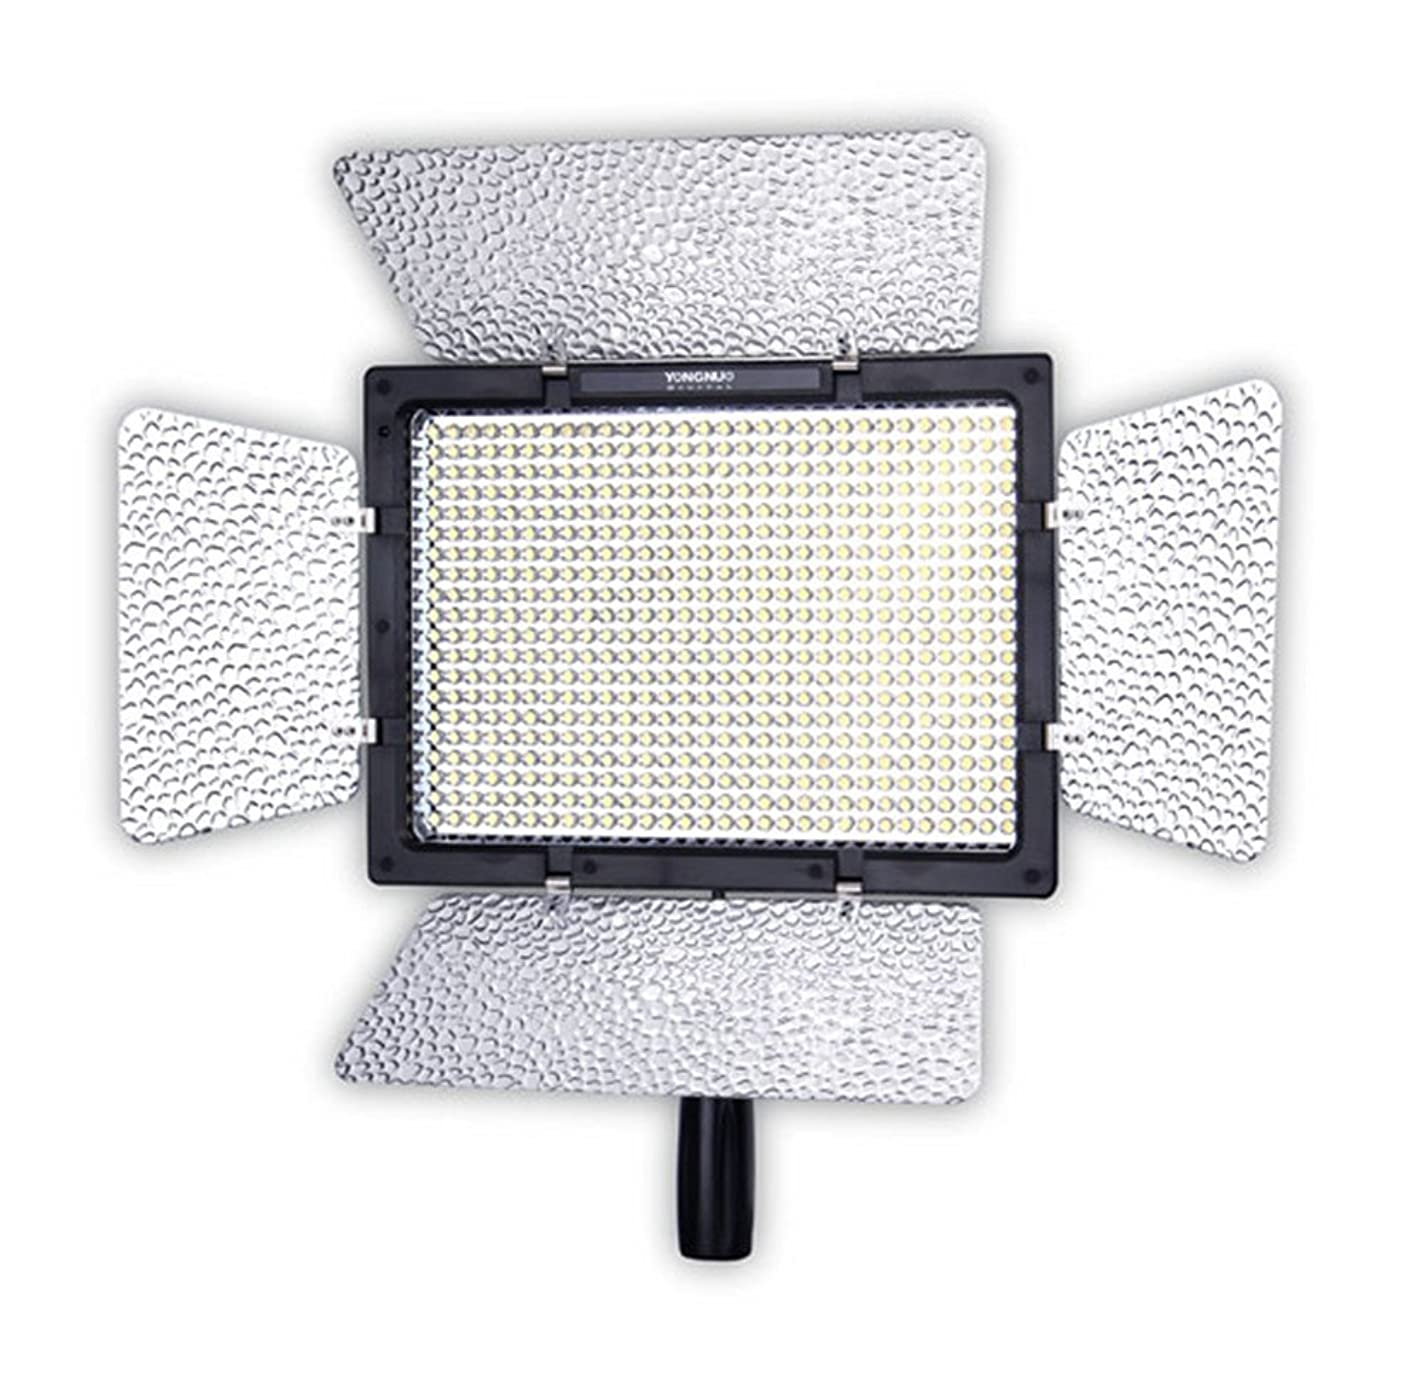 YONGNUO YN600L LED Video Light with Adjustable Color Temperature 3200K-5500K for the SLR Cameras Camcorders, like Canon Nikon Pentax Olympus Samsung Panasonic JVC etc. fbe28311169